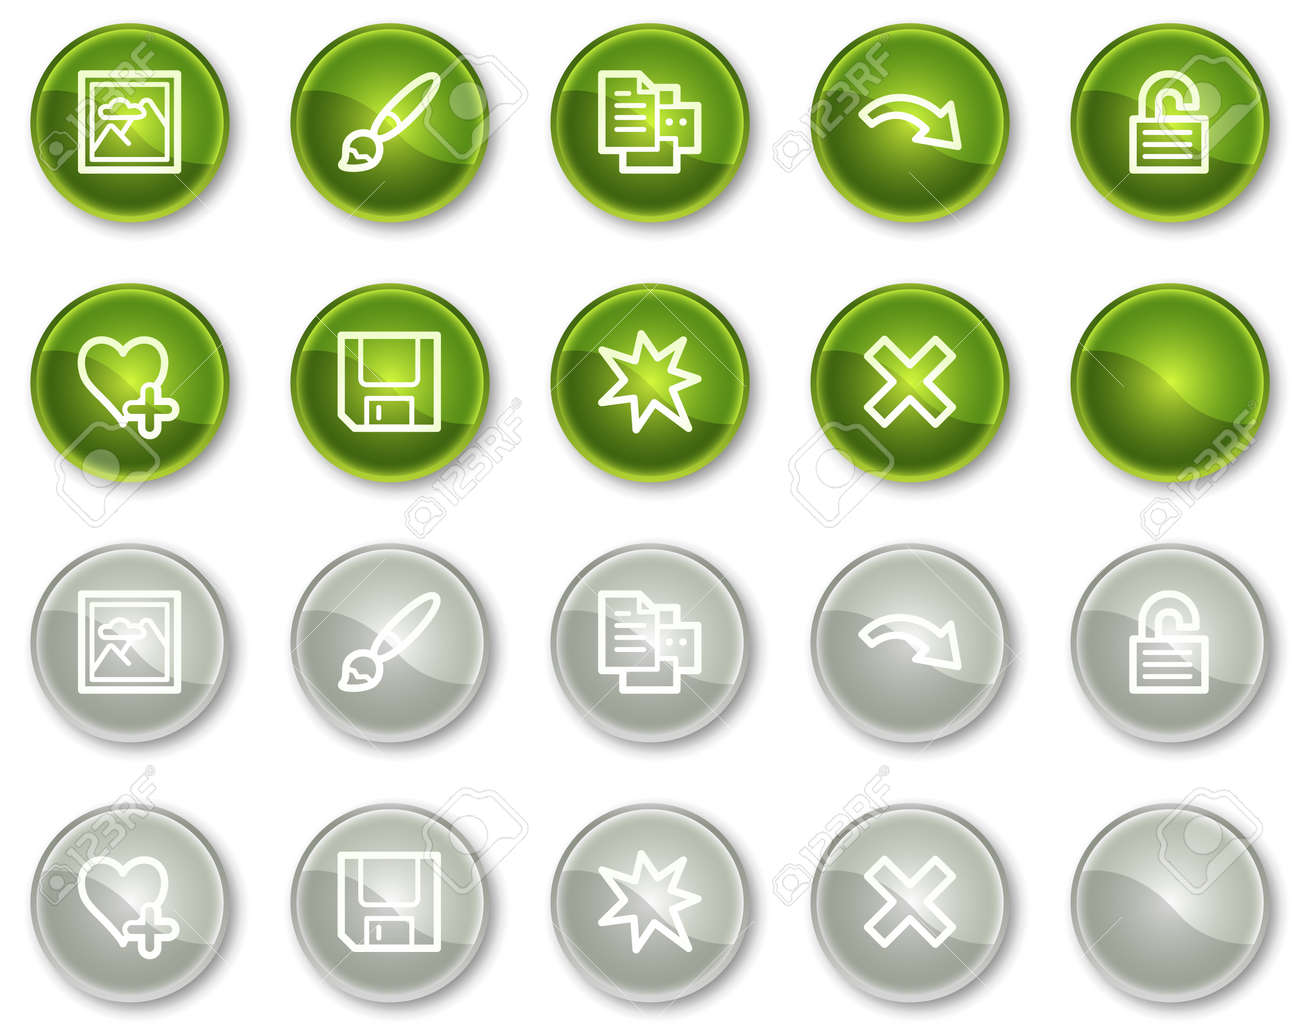 Image viewer web icons set 2, green and grey circle buttons series Stock Vector - 6046936